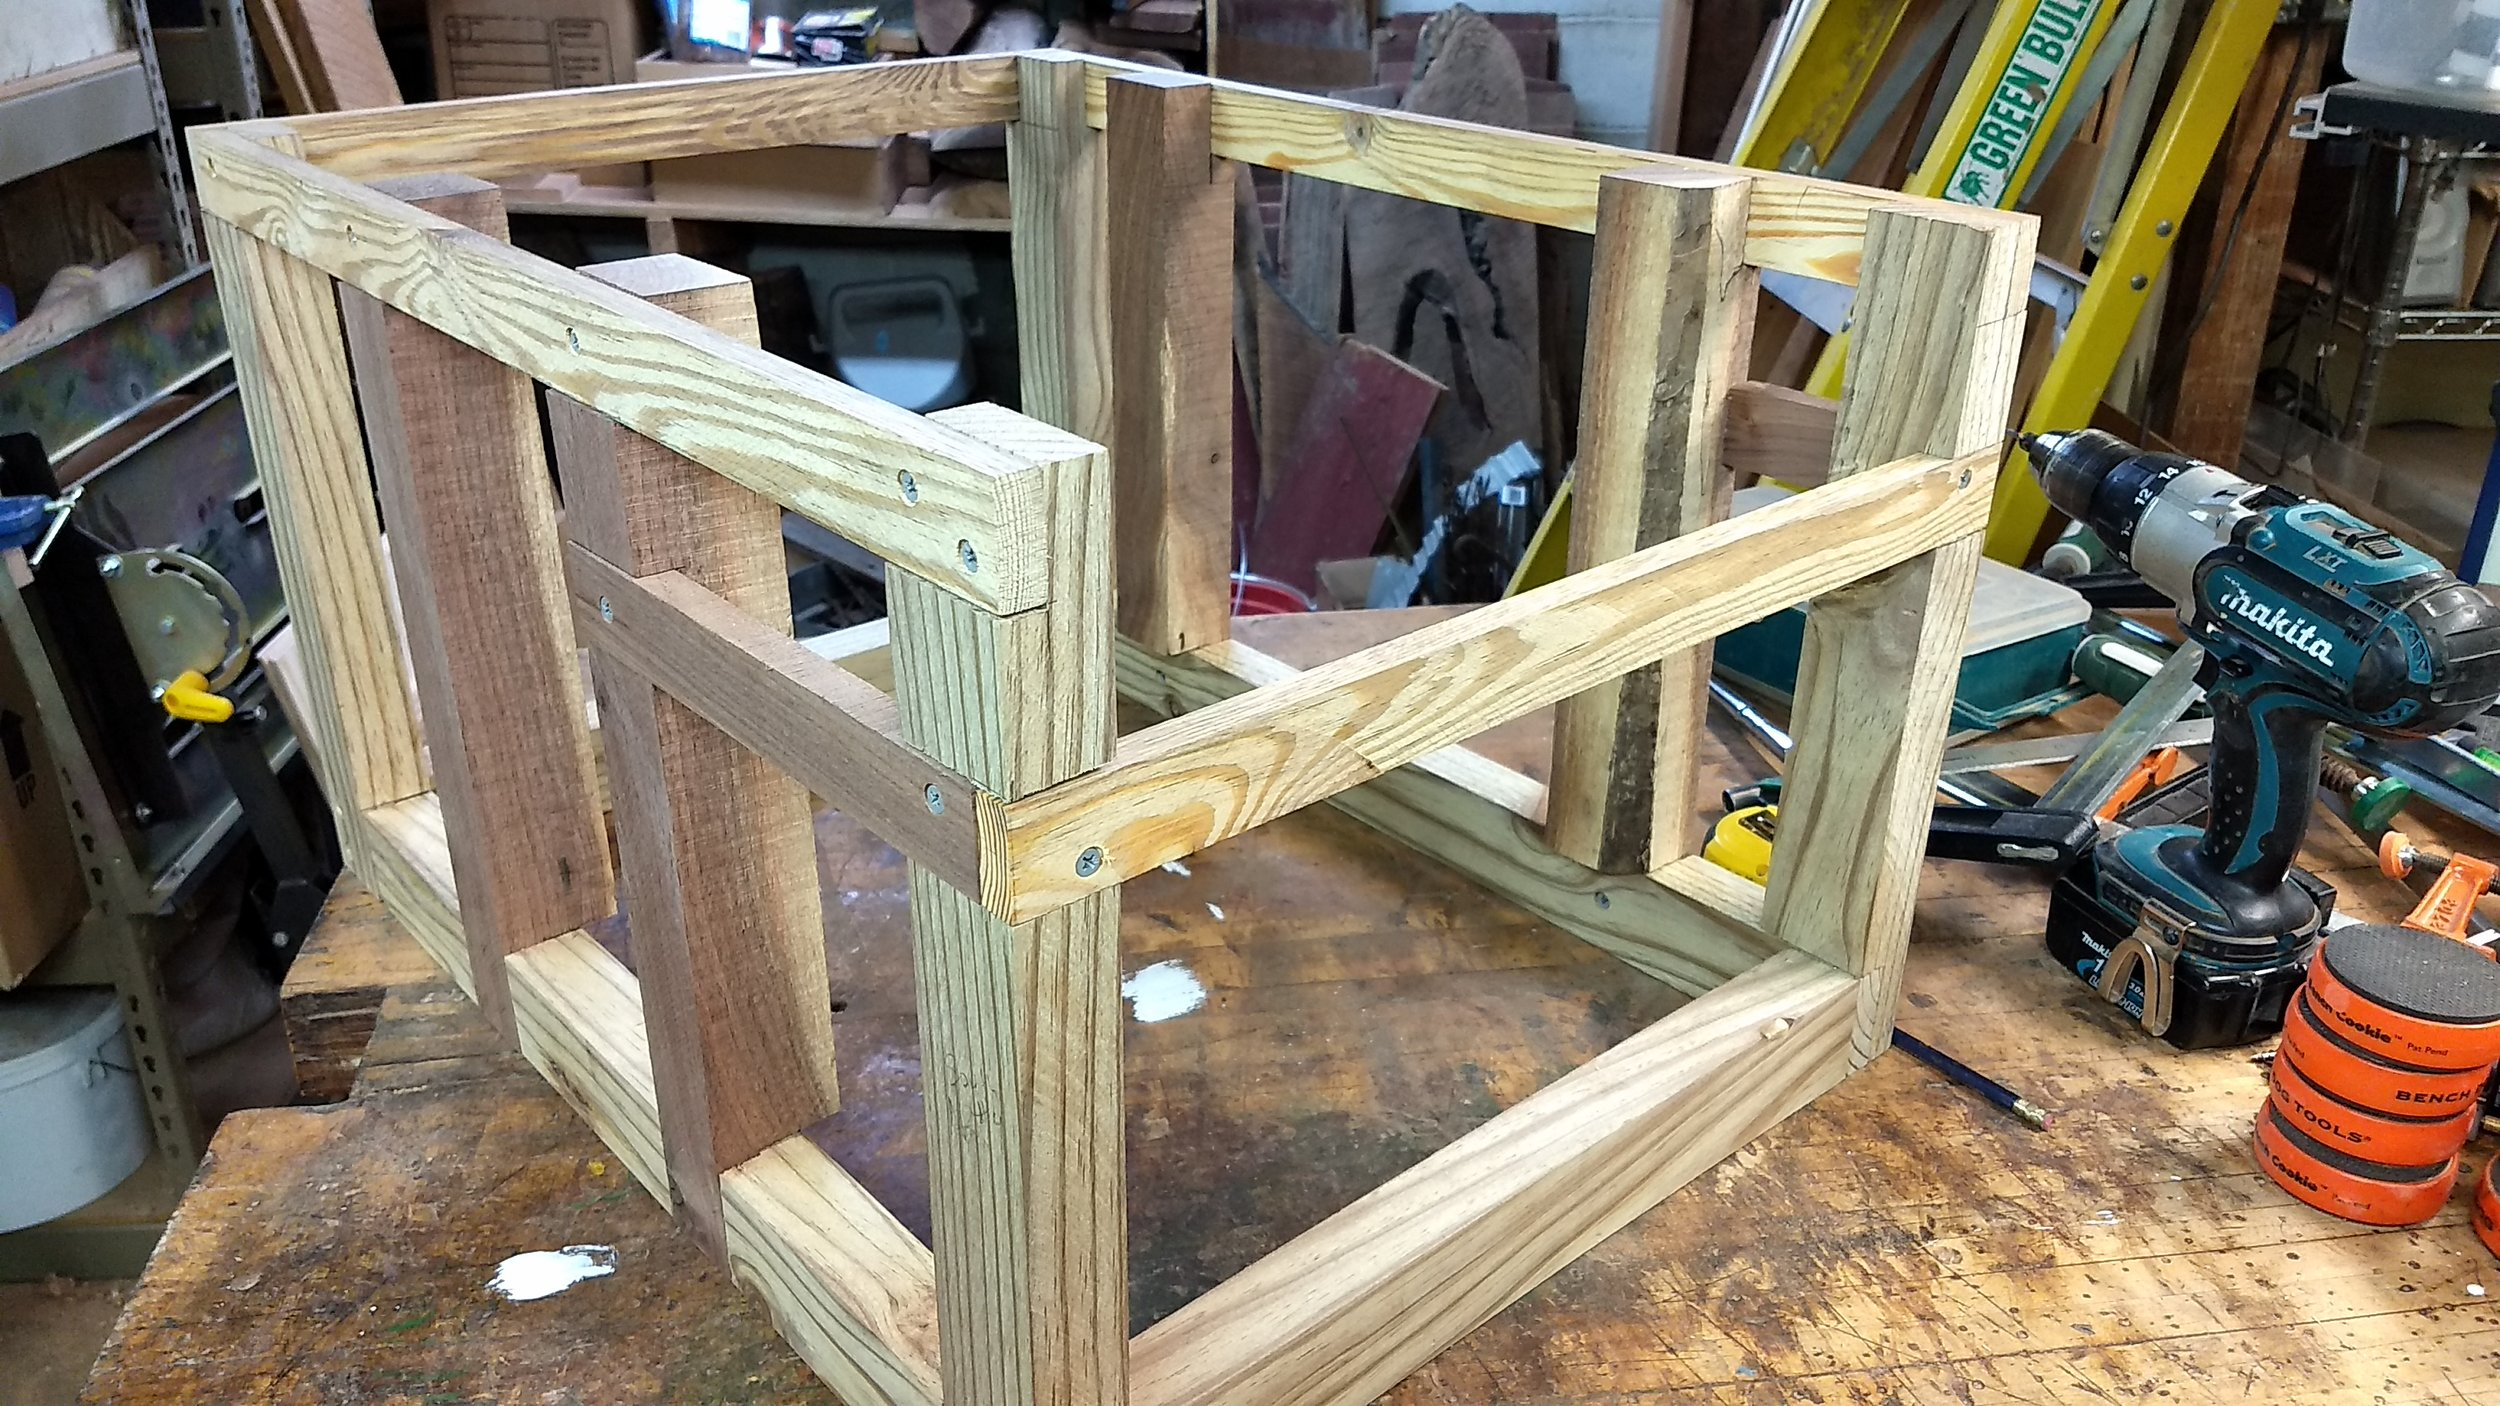 The posts and beams needed to strengthen the structure. The beams on the closest end will support a small shelf.